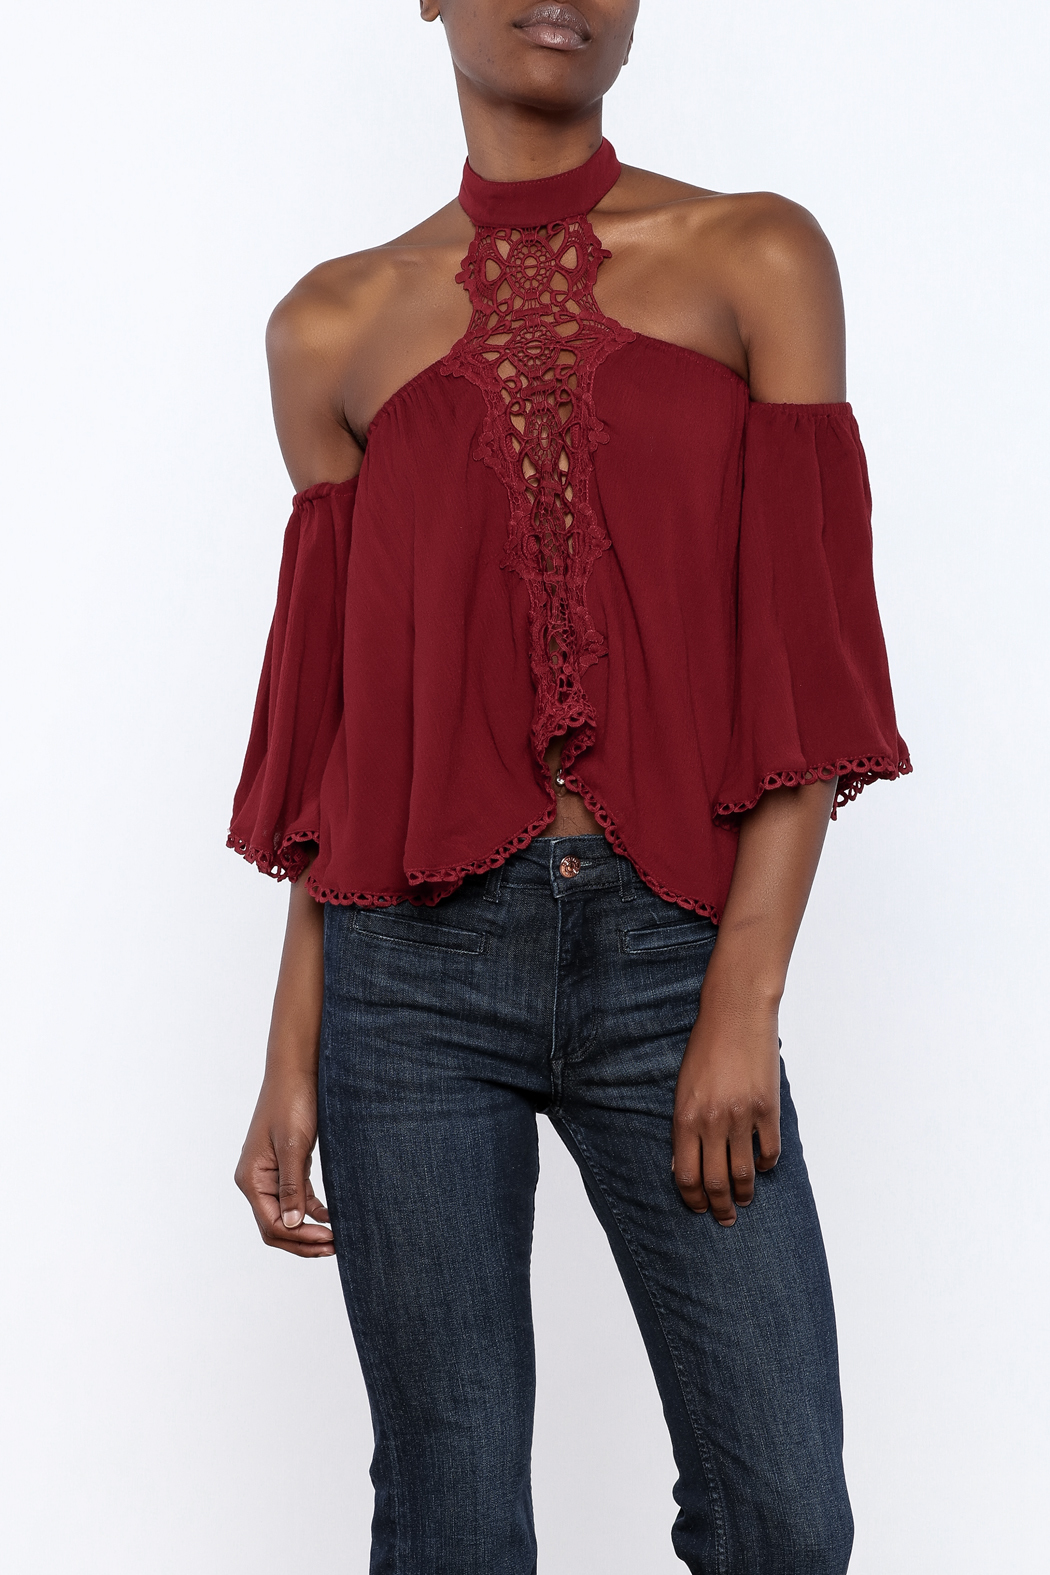 essue Goddess Lace Choker Top - Main Image